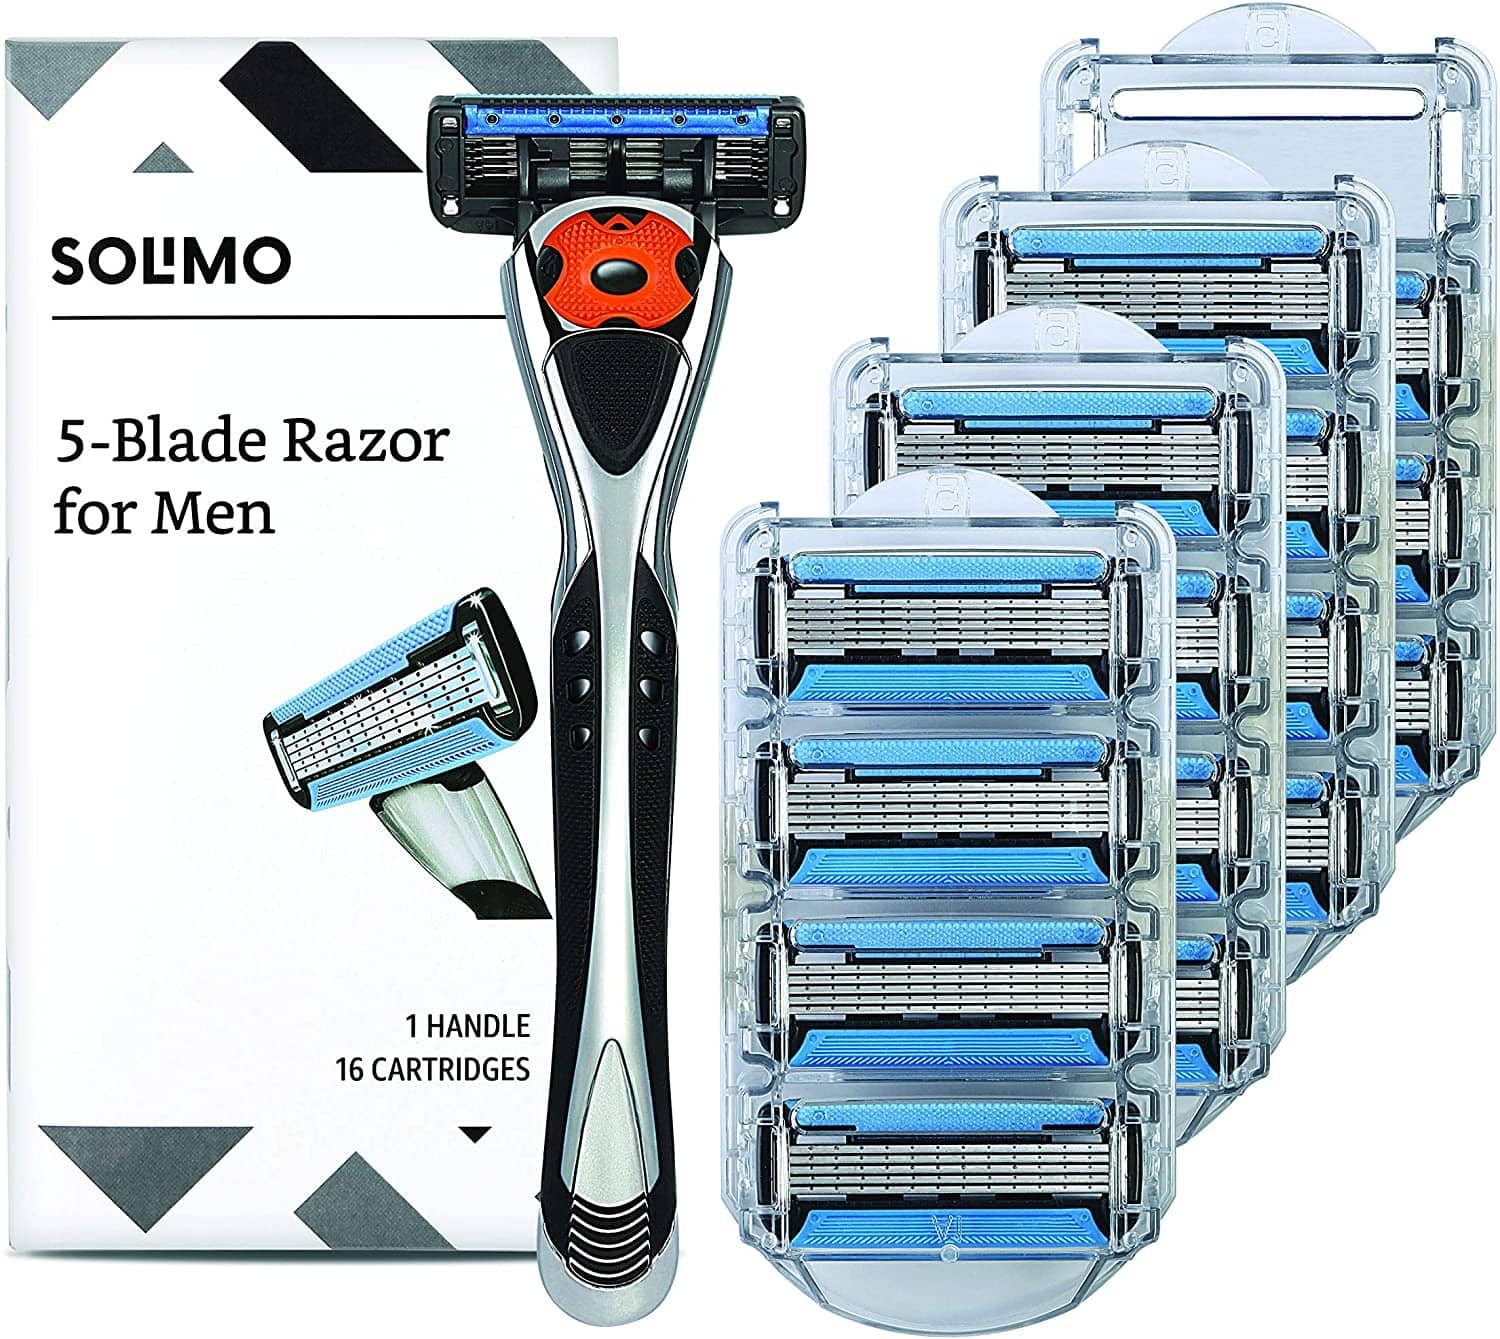 Prime Members: Solimo Men's 5-Blade MotionSphere Razor + 16 Cartridges $13.49 w/ S&S + Free Shipping